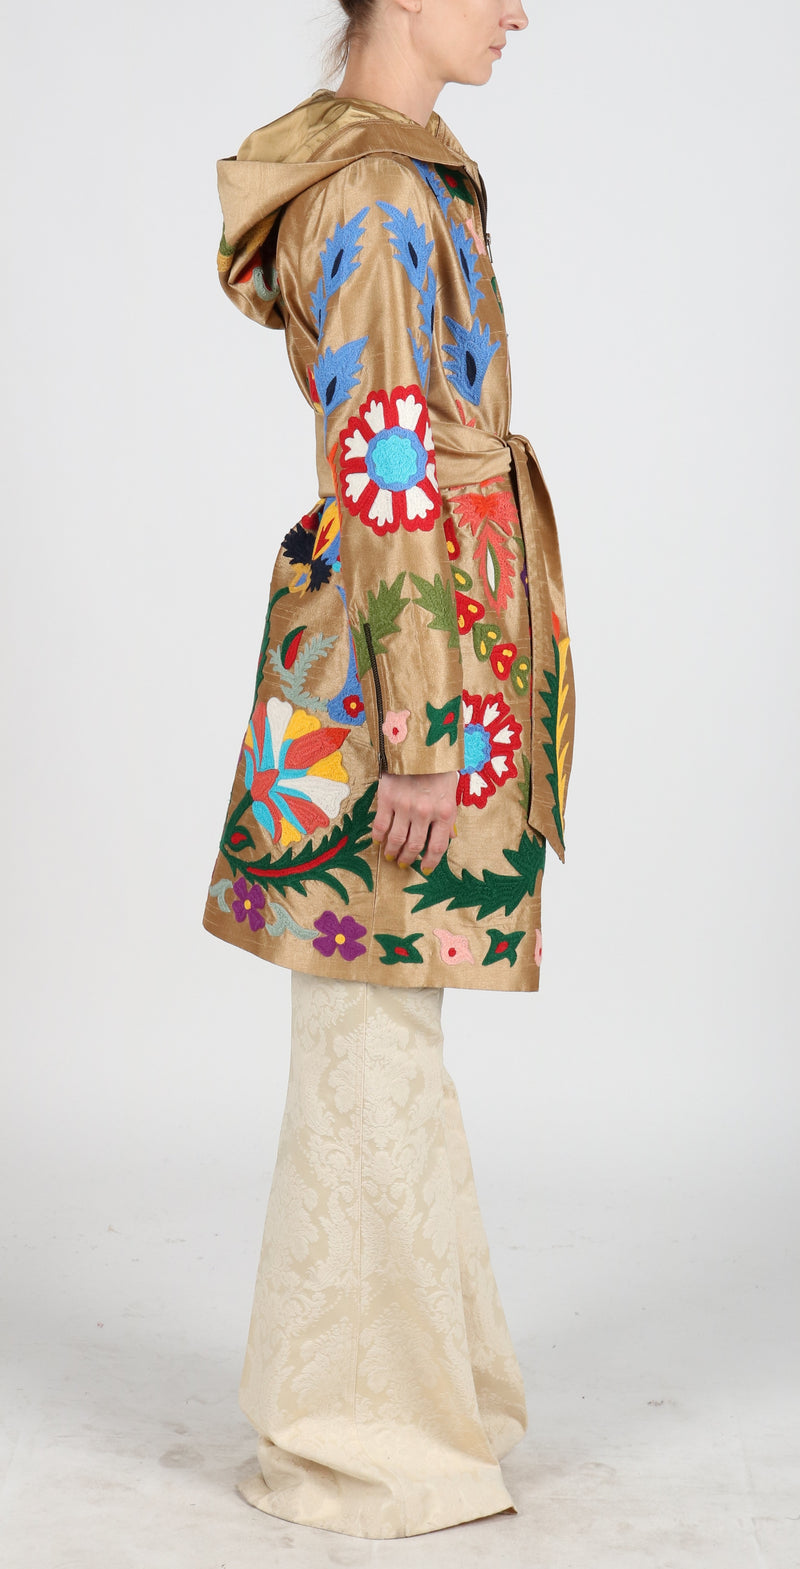 Fanm Mon LORES Vyshyvanka Hoodie Embroidered Brown Coat Multi Floral Embroidery Silk Jacket SIZE SMALL